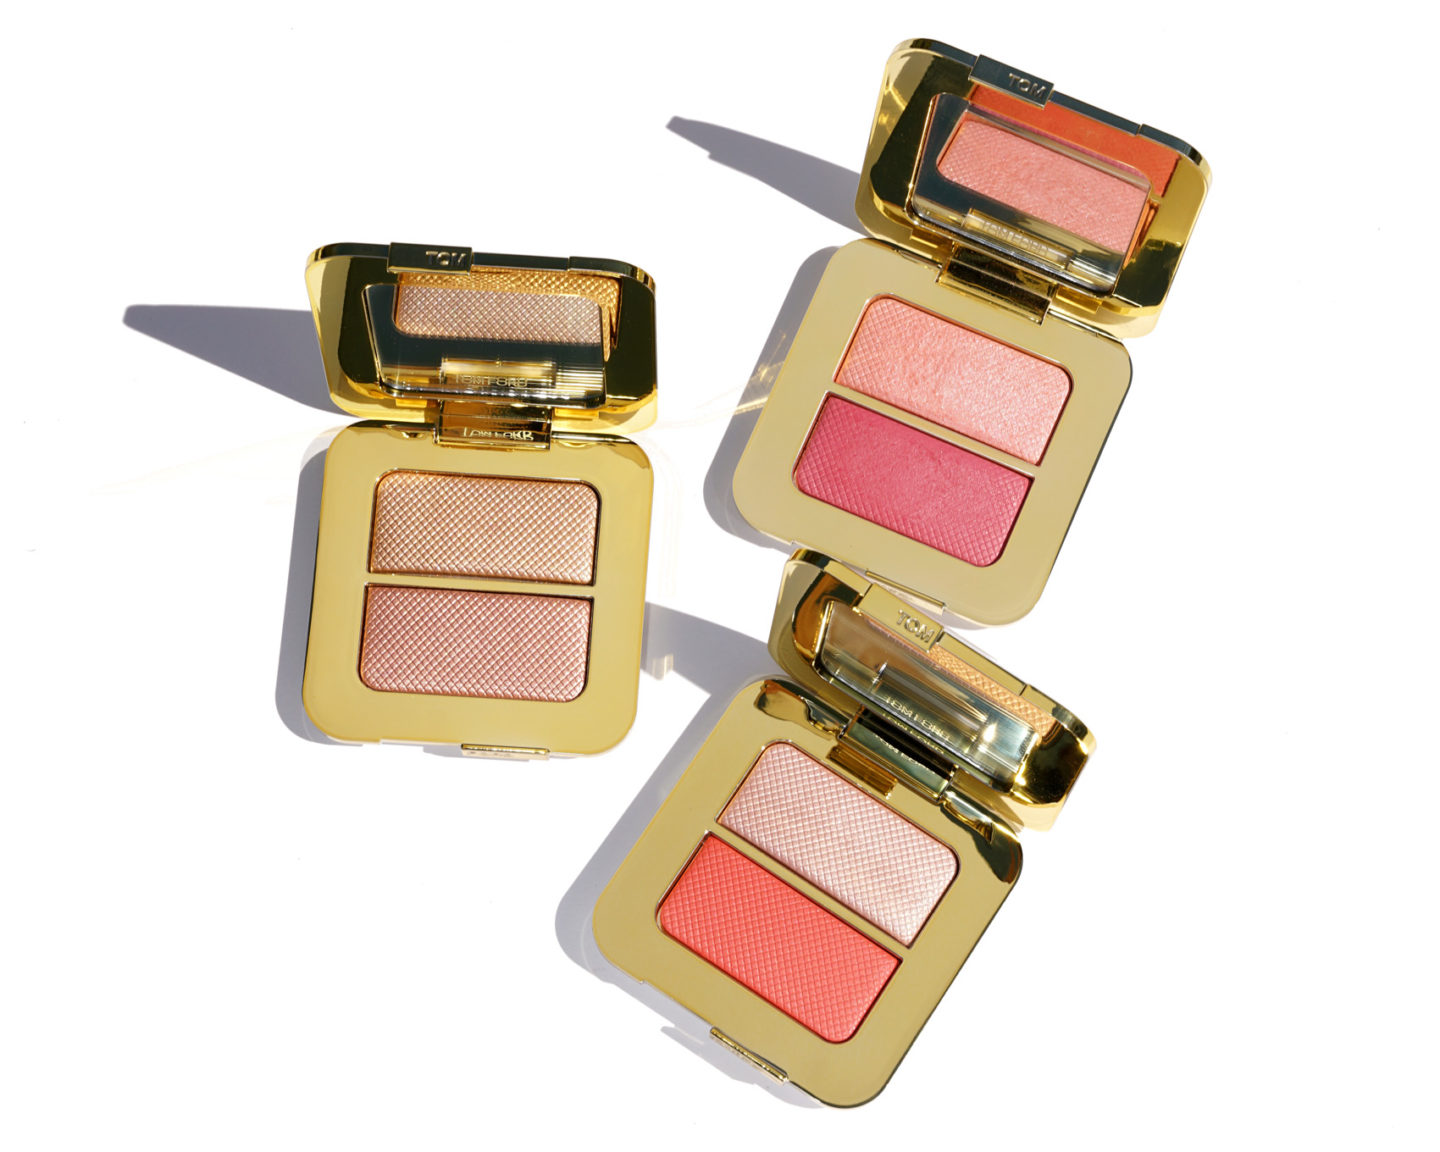 Tom Ford Summer Soleil Reflects Gilt, Paradise Lust and Bicoastal | The Beauty Look Book